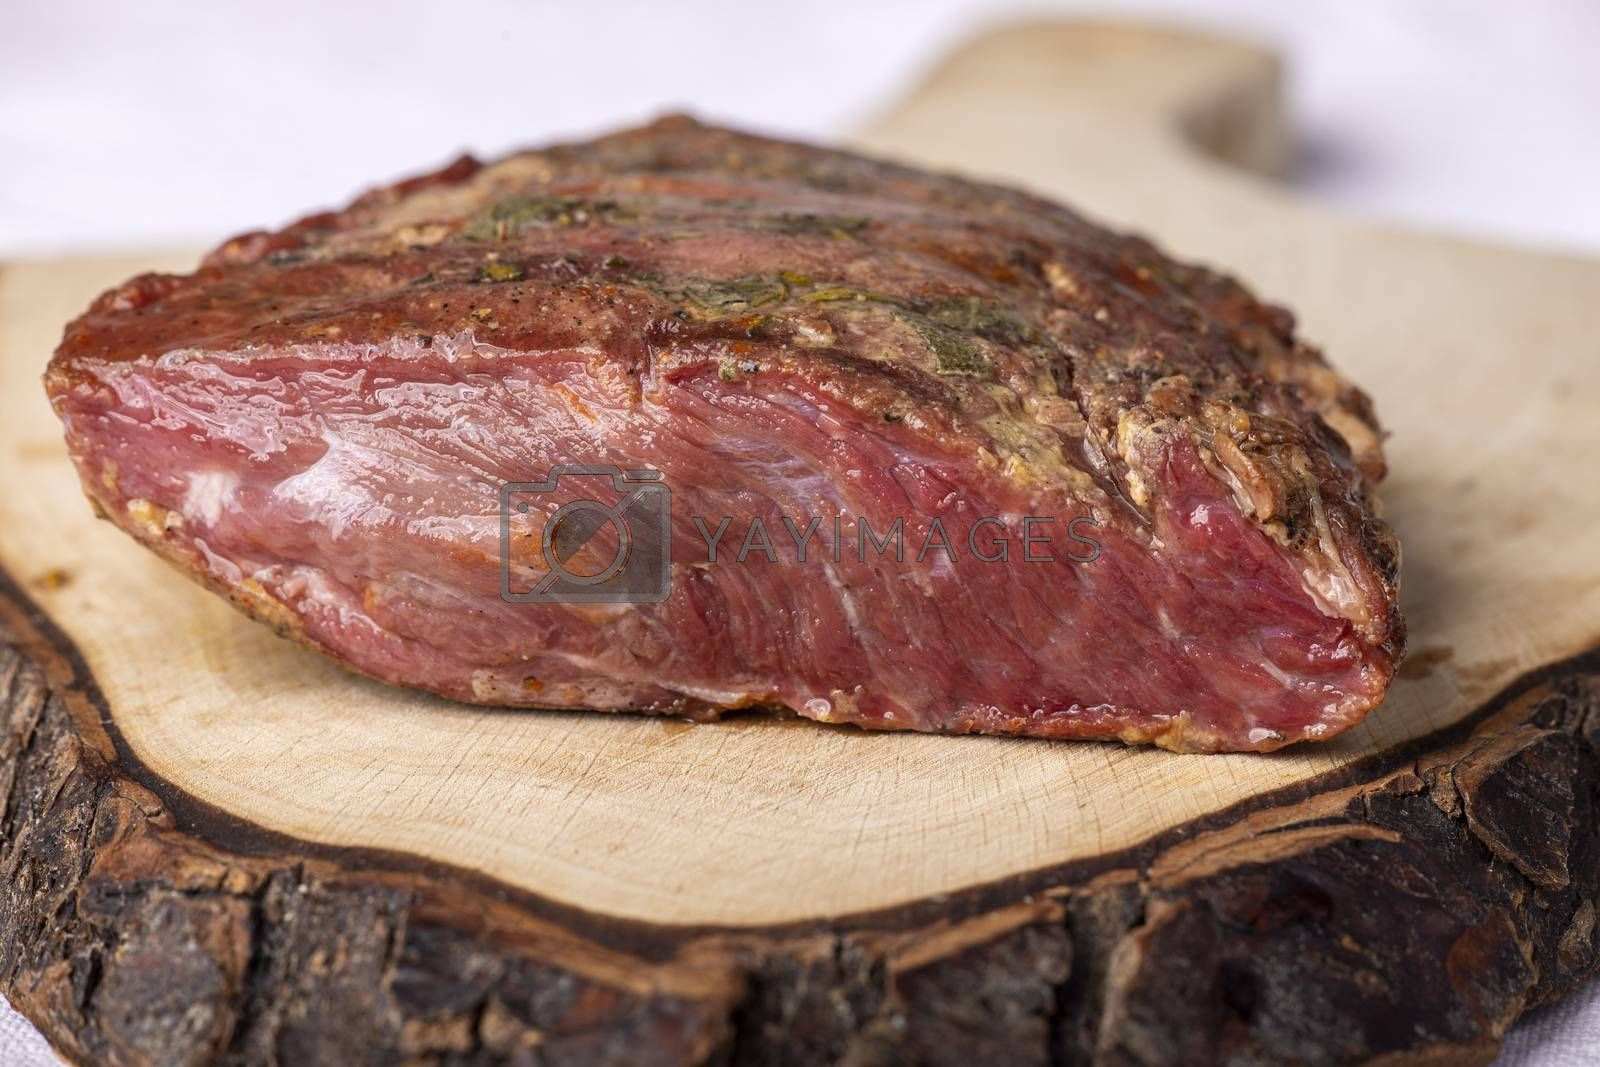 pastrami meat on a wooden chopping board